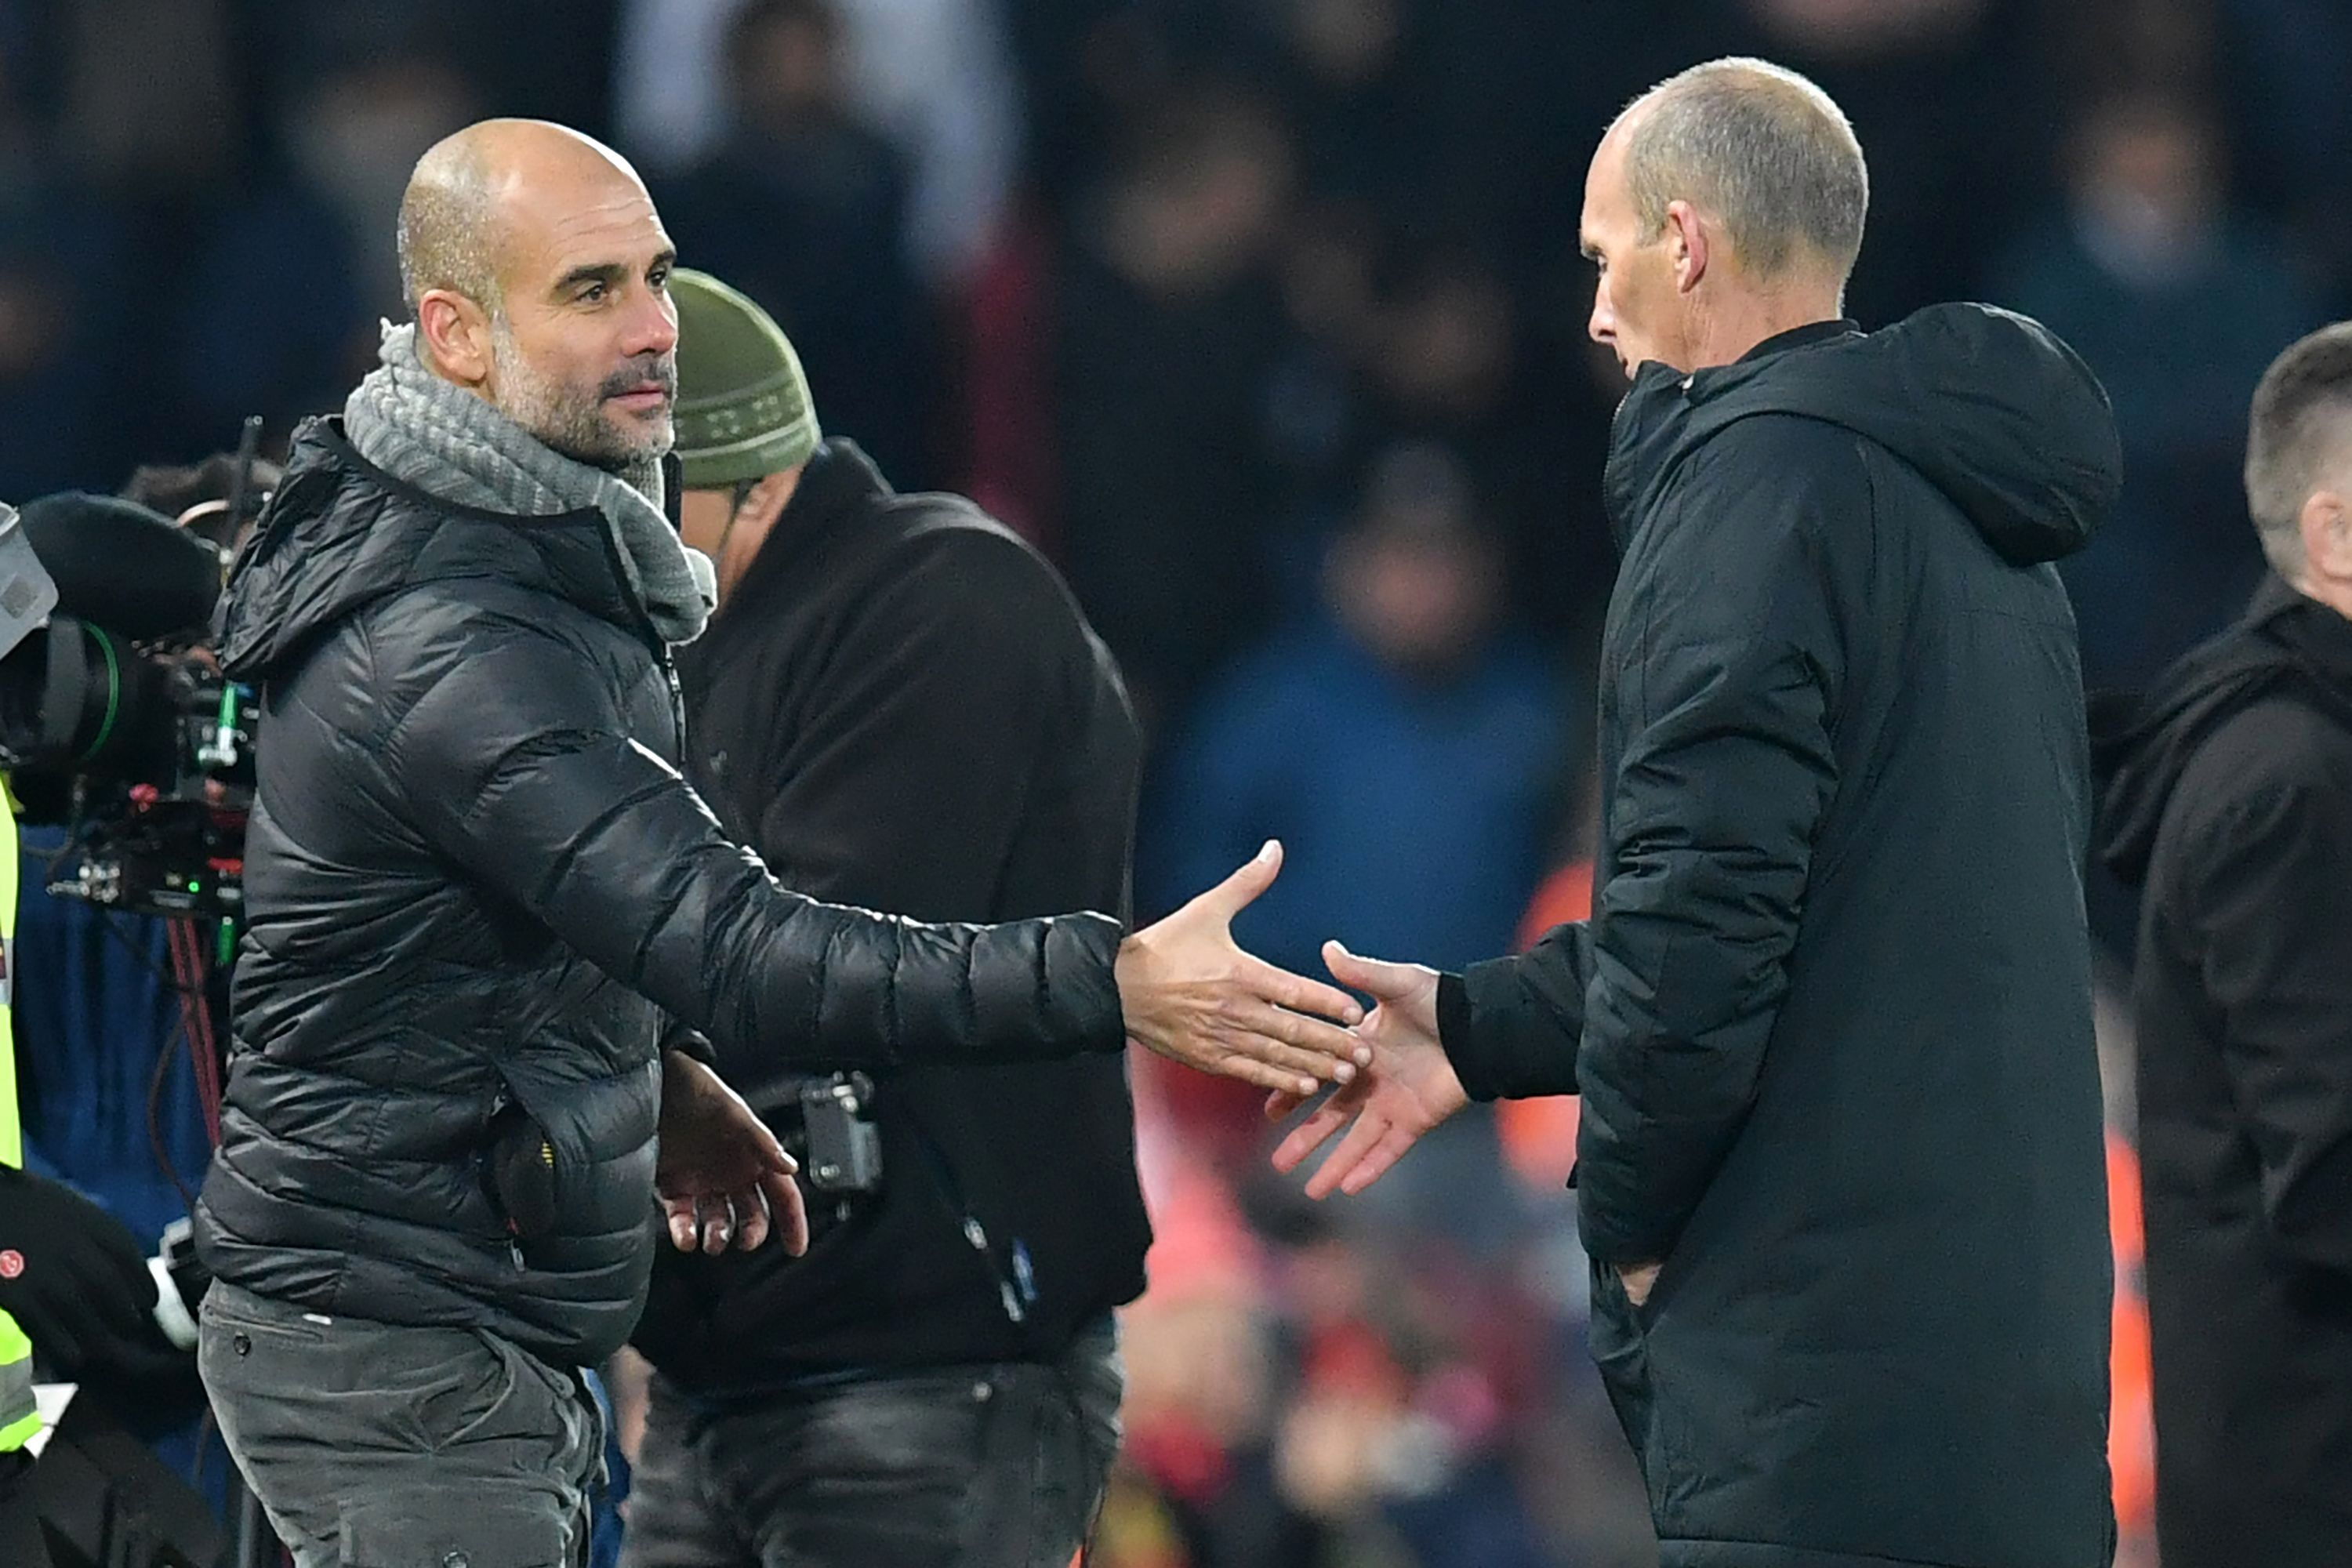 Guardiola also shook the hand of fourth official Mike Dean at Anfield